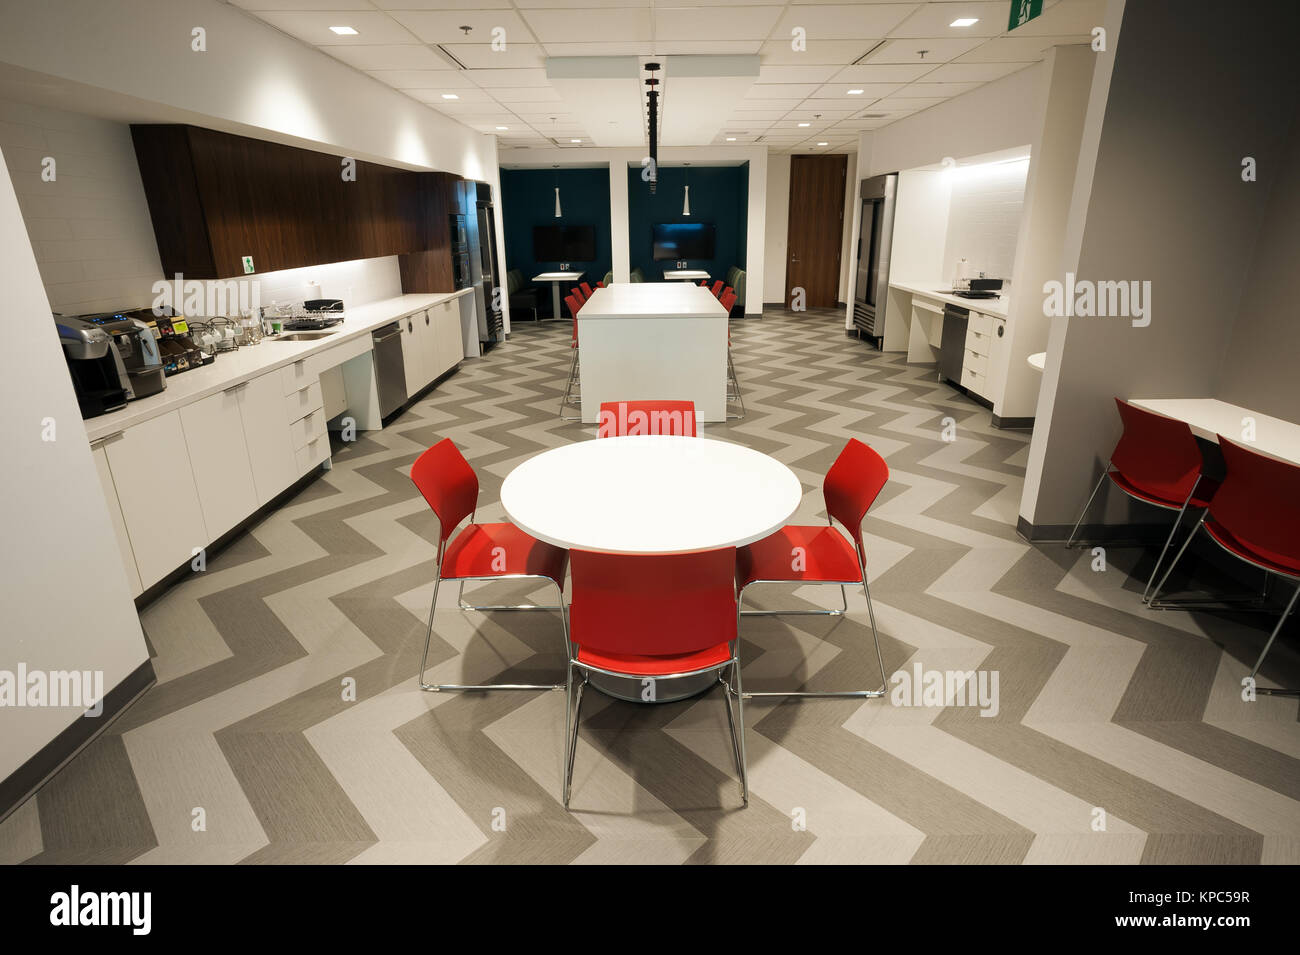 Modern Offices Kitchen Design High Resolution Stock Photography And Images Alamy